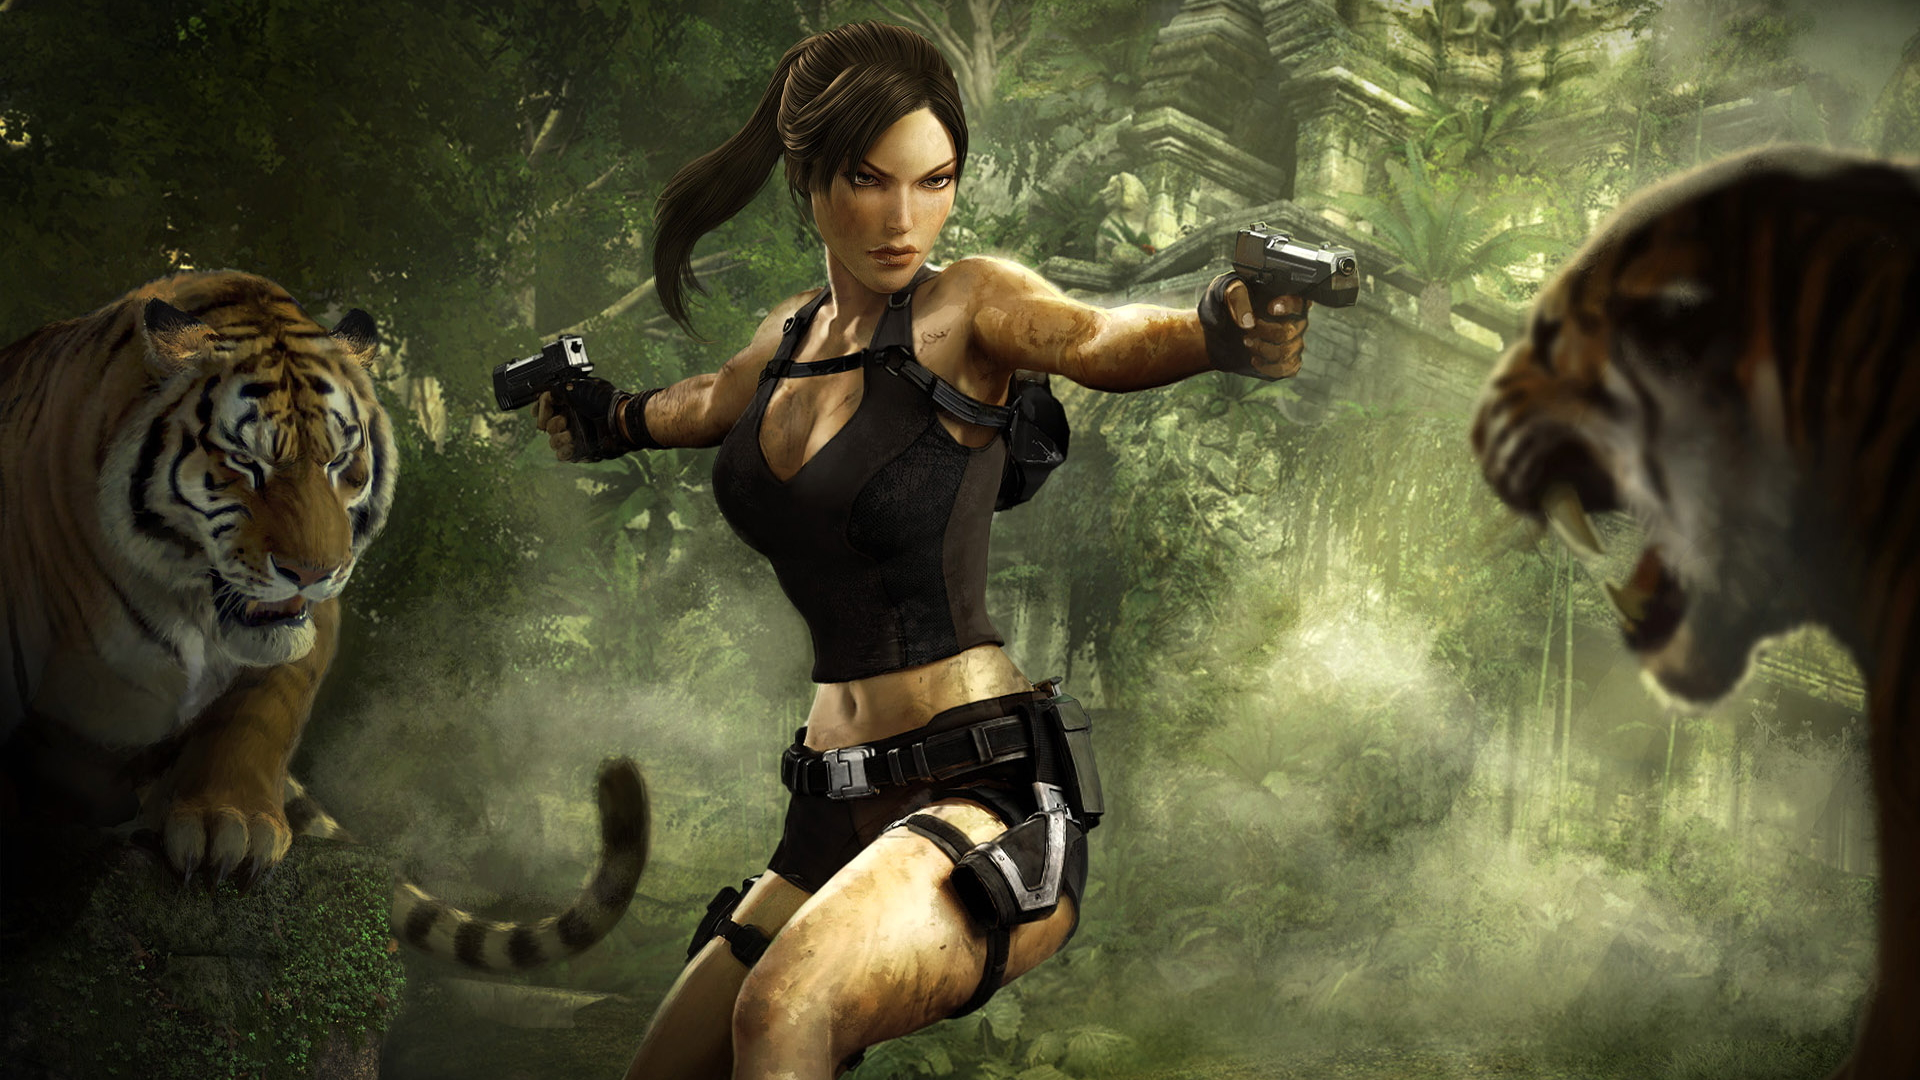 Tomb Raider Underworld 3 Wallpapers